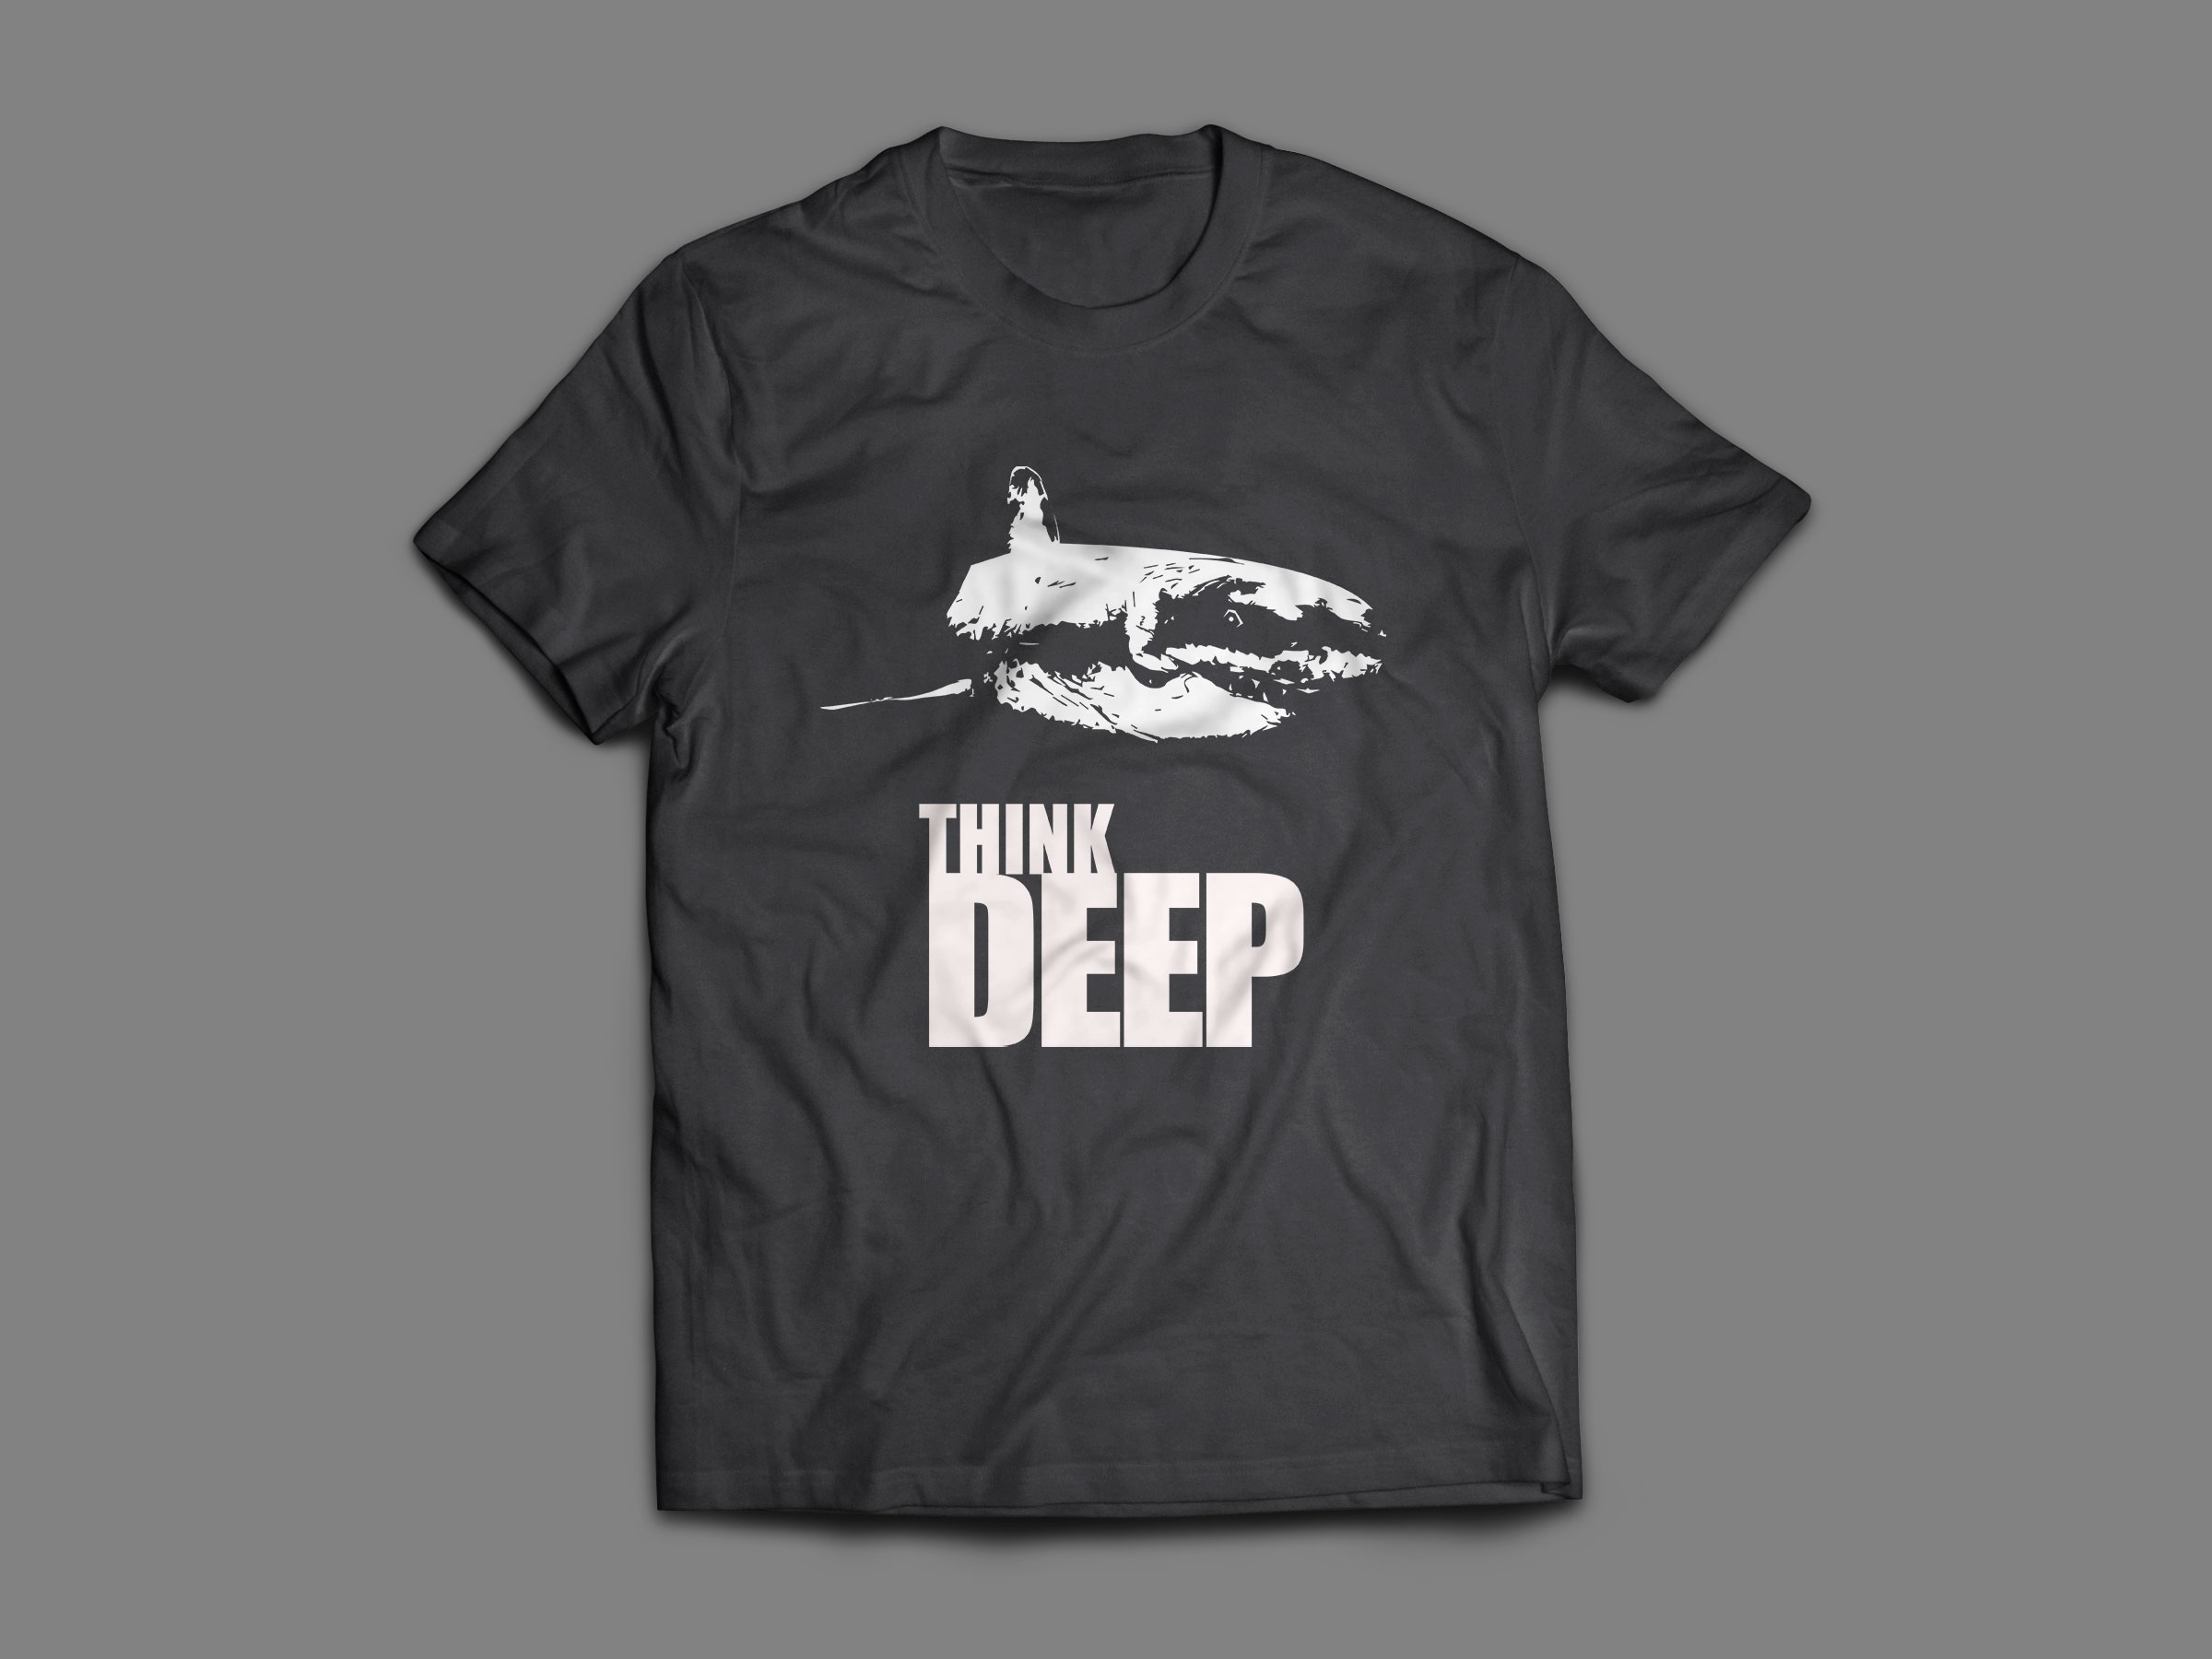 think deep, le t-shirt avec un requin